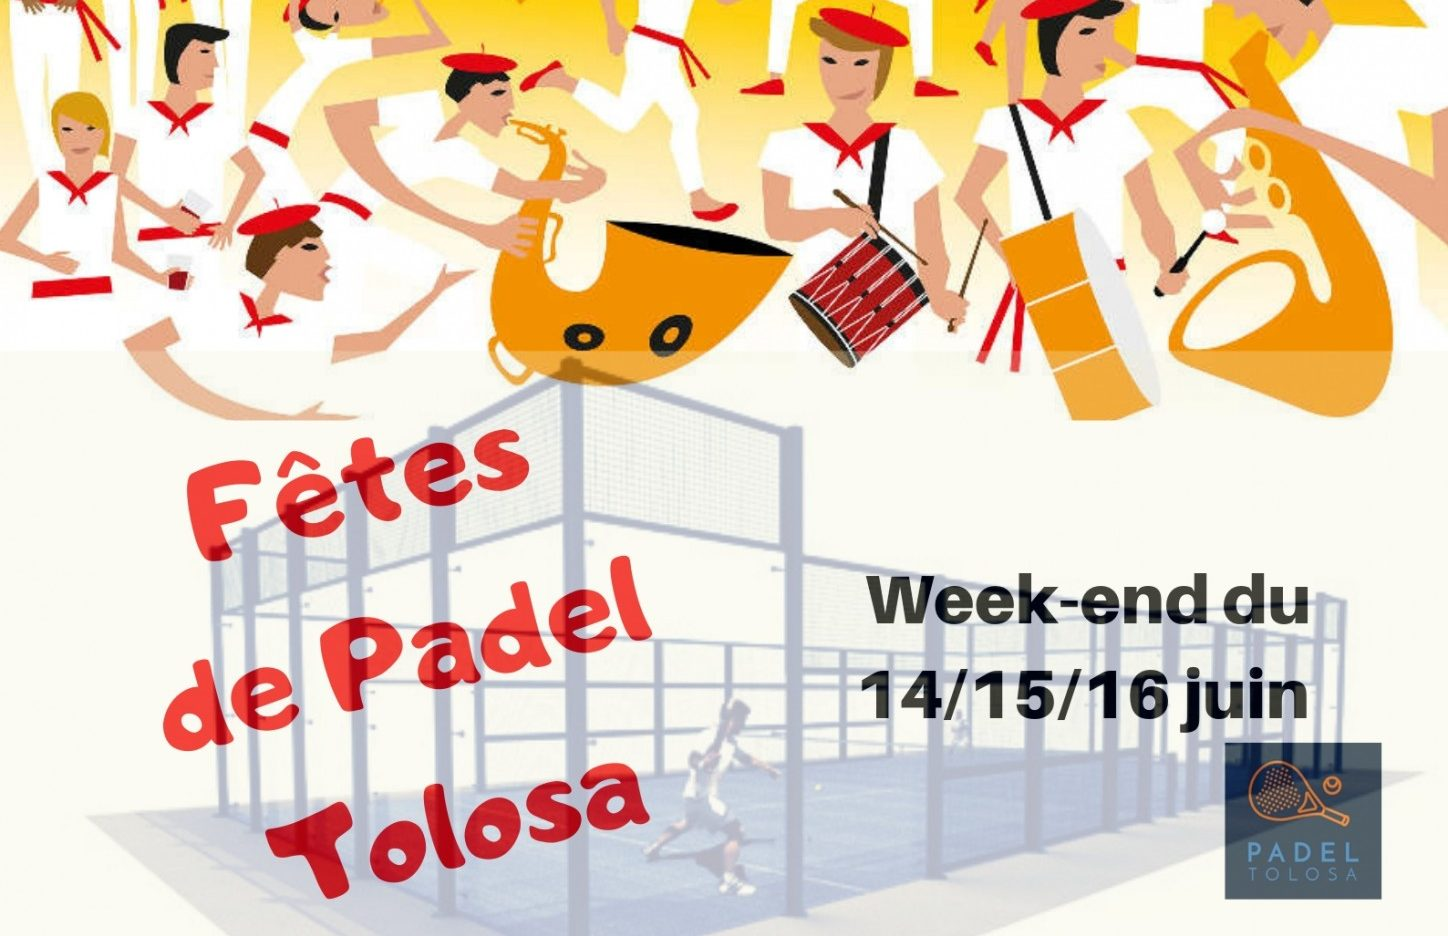 Padel Tolosa: HUGE WE from June 14 to 16